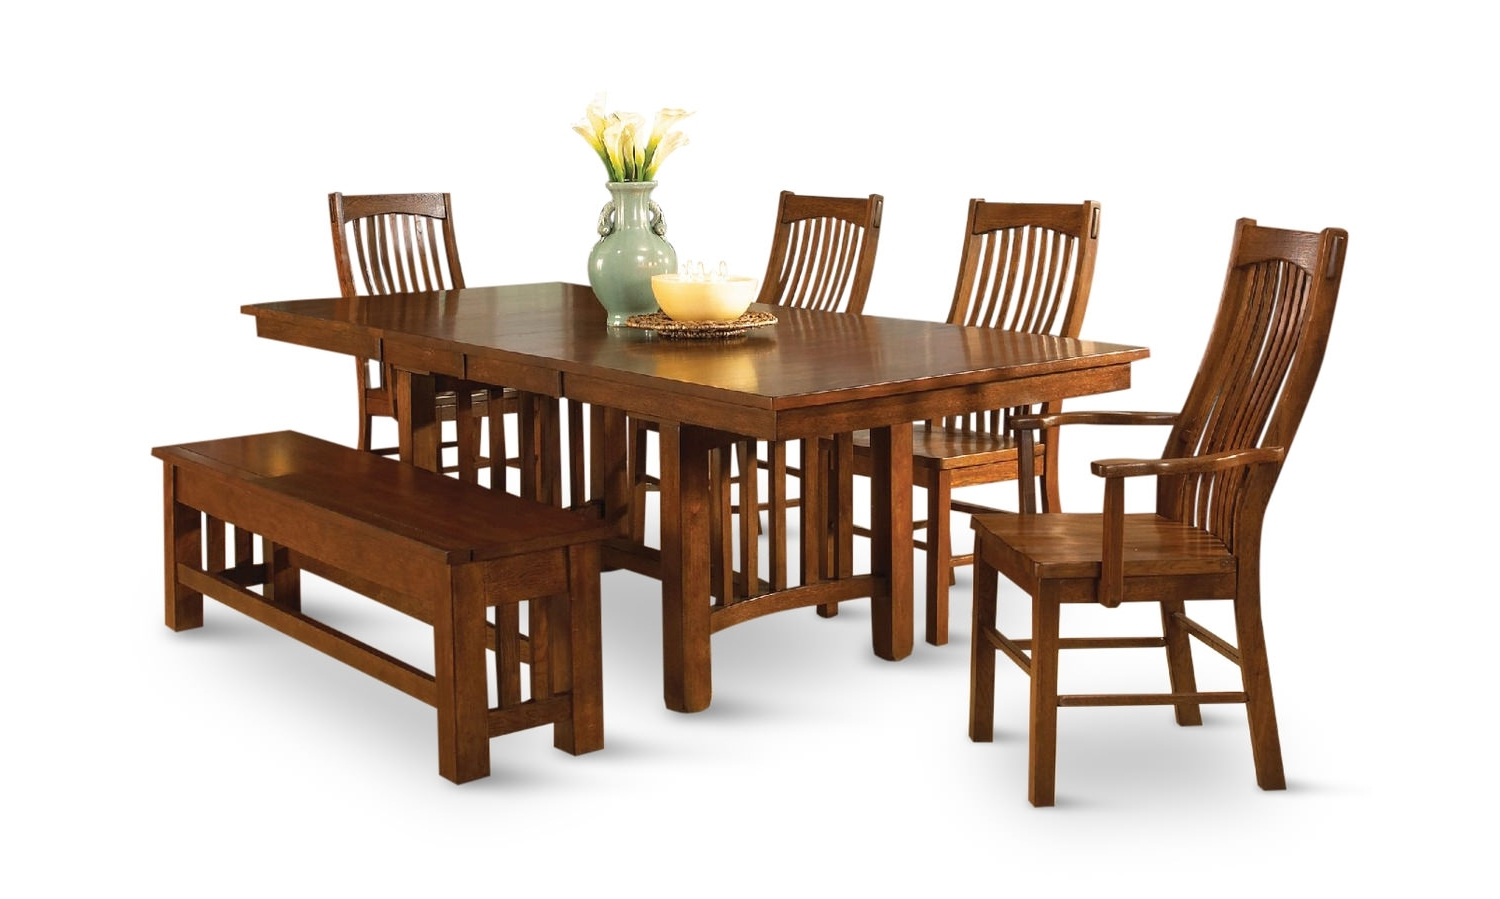 Laurelhurst Solid Oak Mission Dining Table And 4 Side Chairs Intended For Recent Oak Dining Furniture (View 14 of 25)